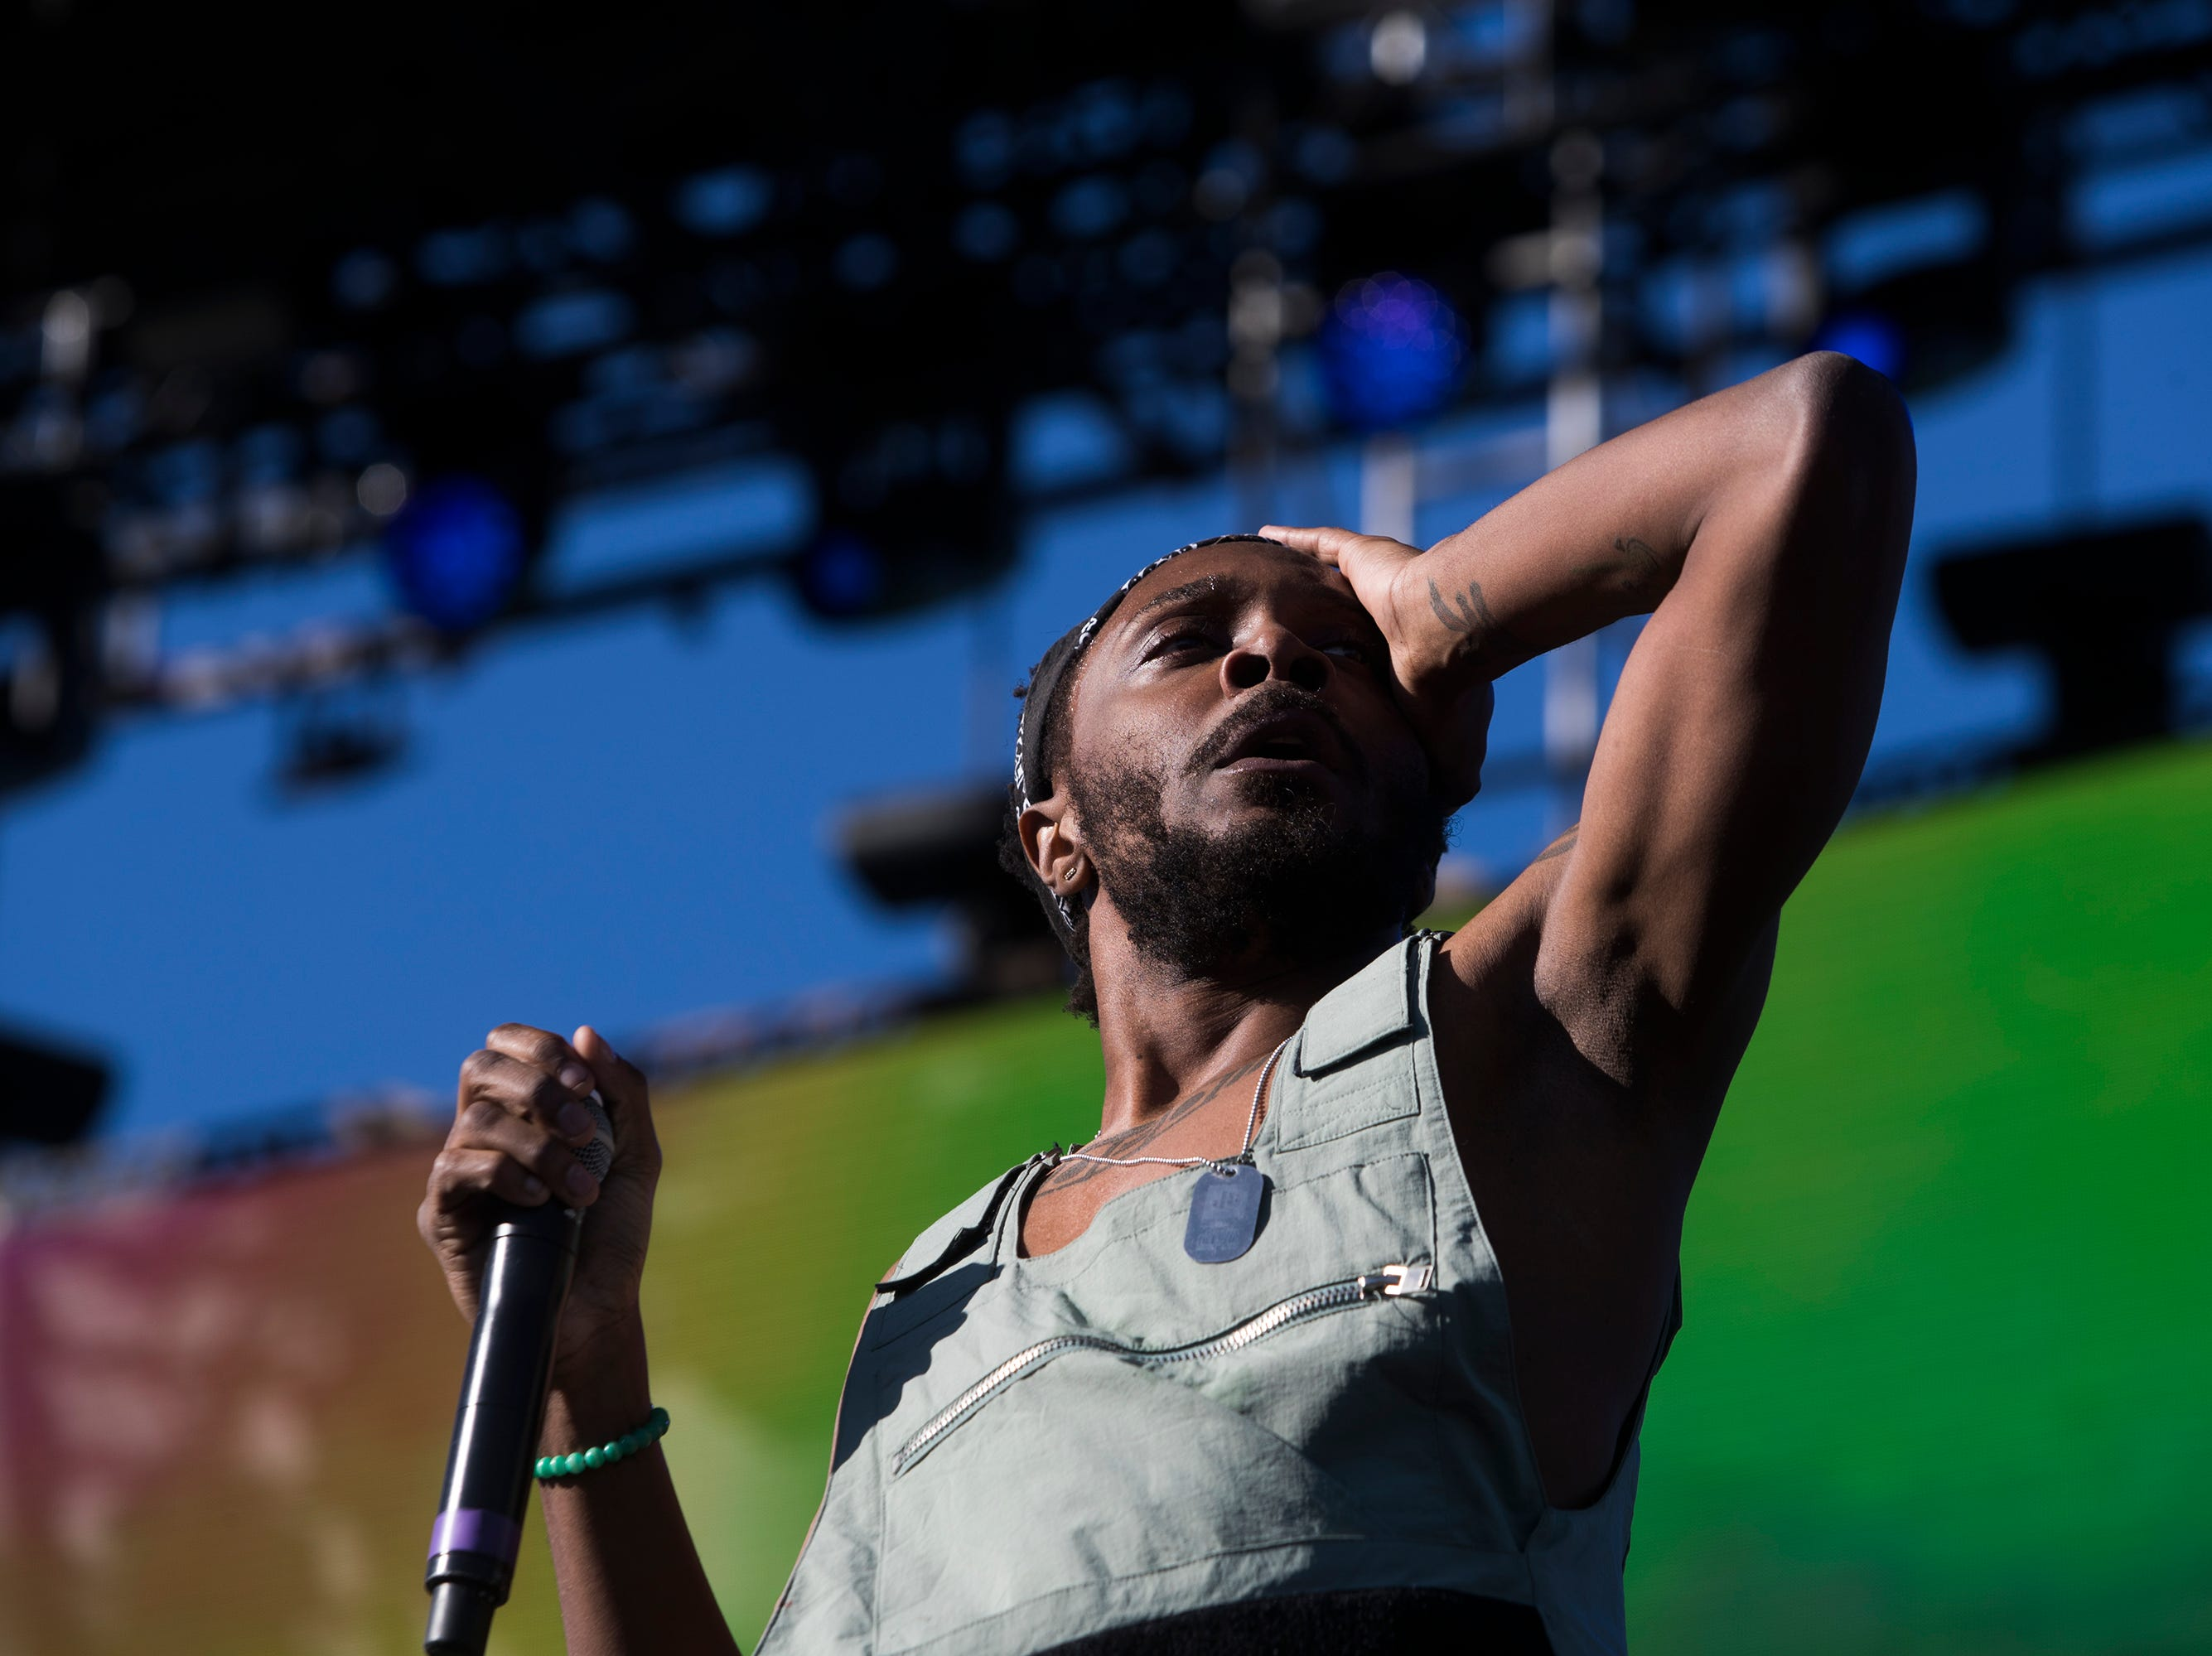 JPEGMAFIA performs on the Outdoor Stage during the 2019 Coachella Valley Music and Arts Festival held at the Empire Polo Club in Indio, California on April 12, 2019.